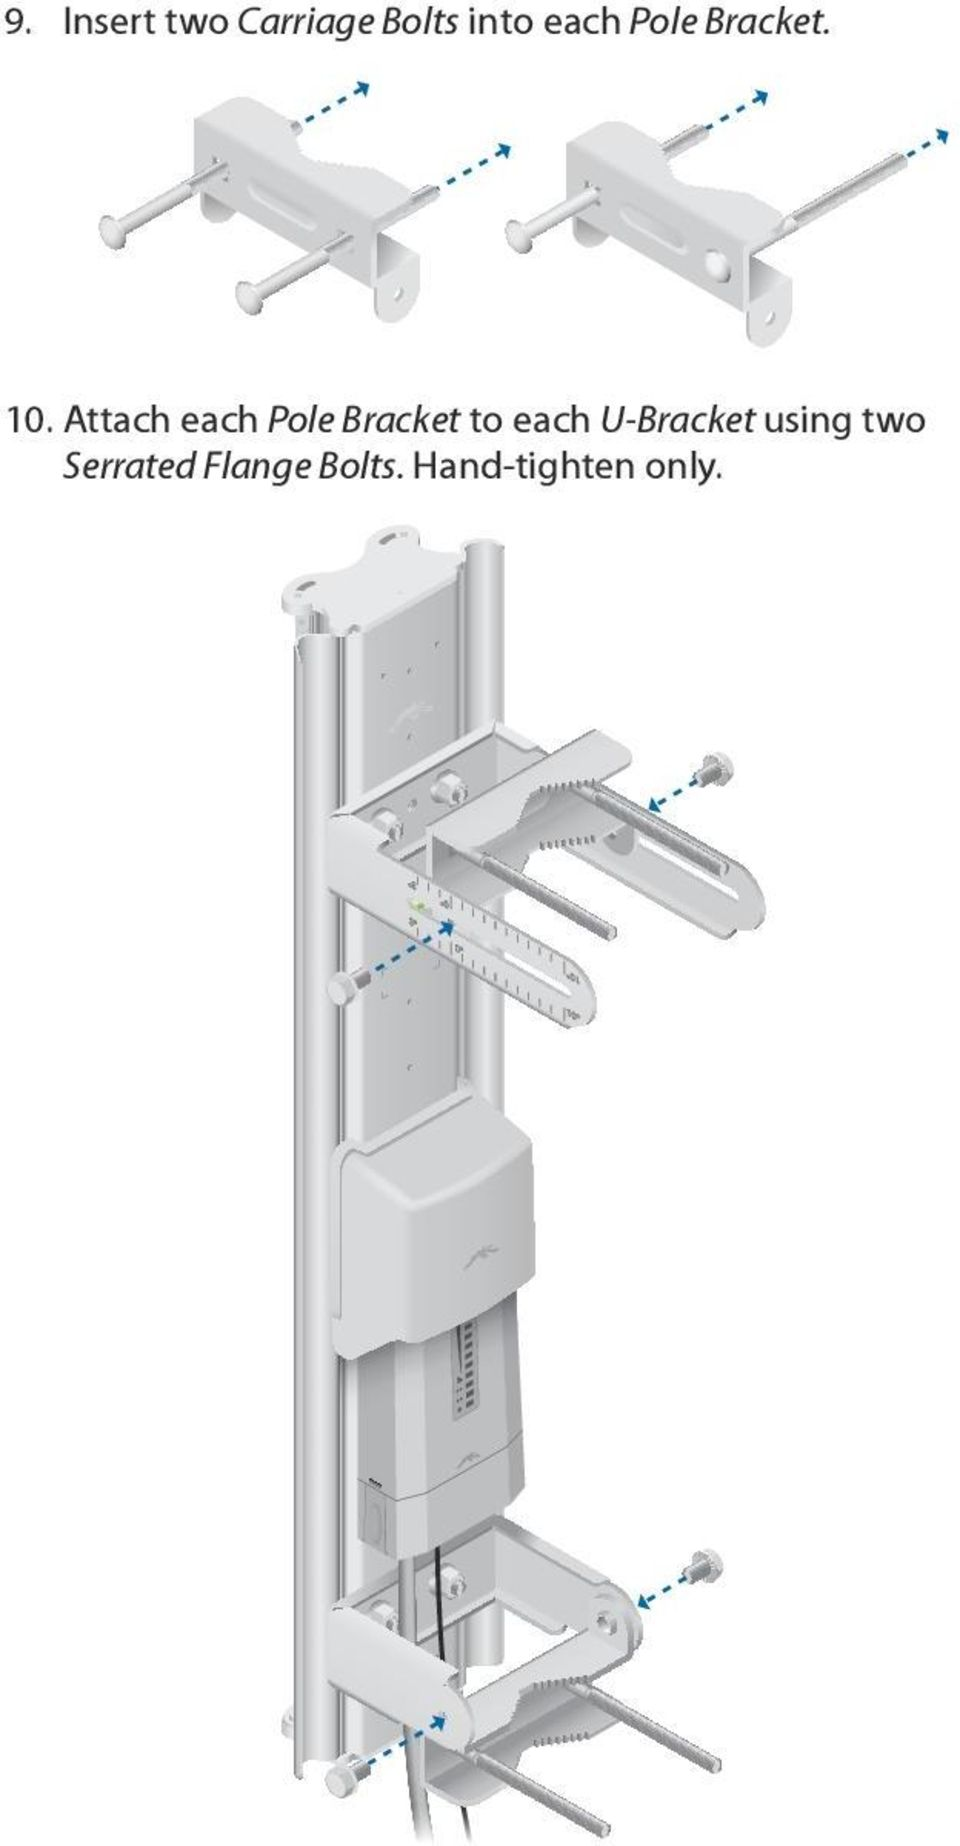 Attach each Pole Bracket to each